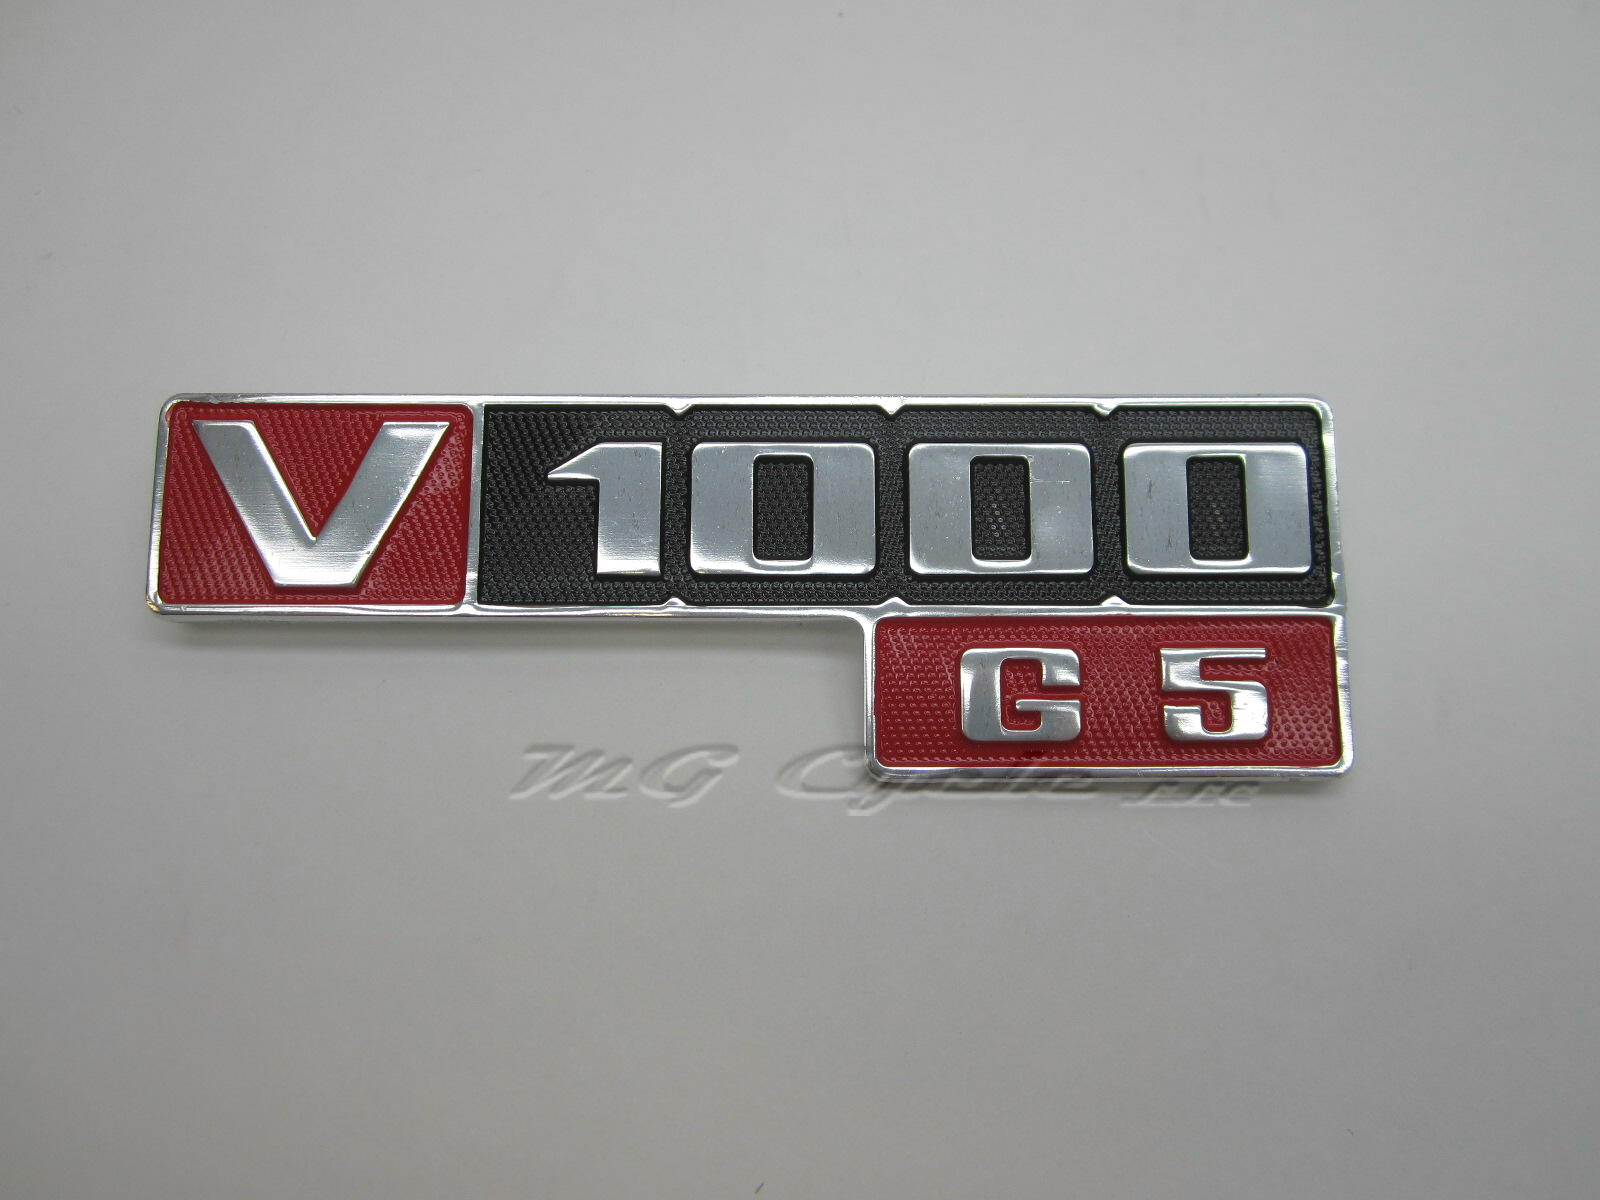 Side cover emblem, V1000 G5 GU18922001